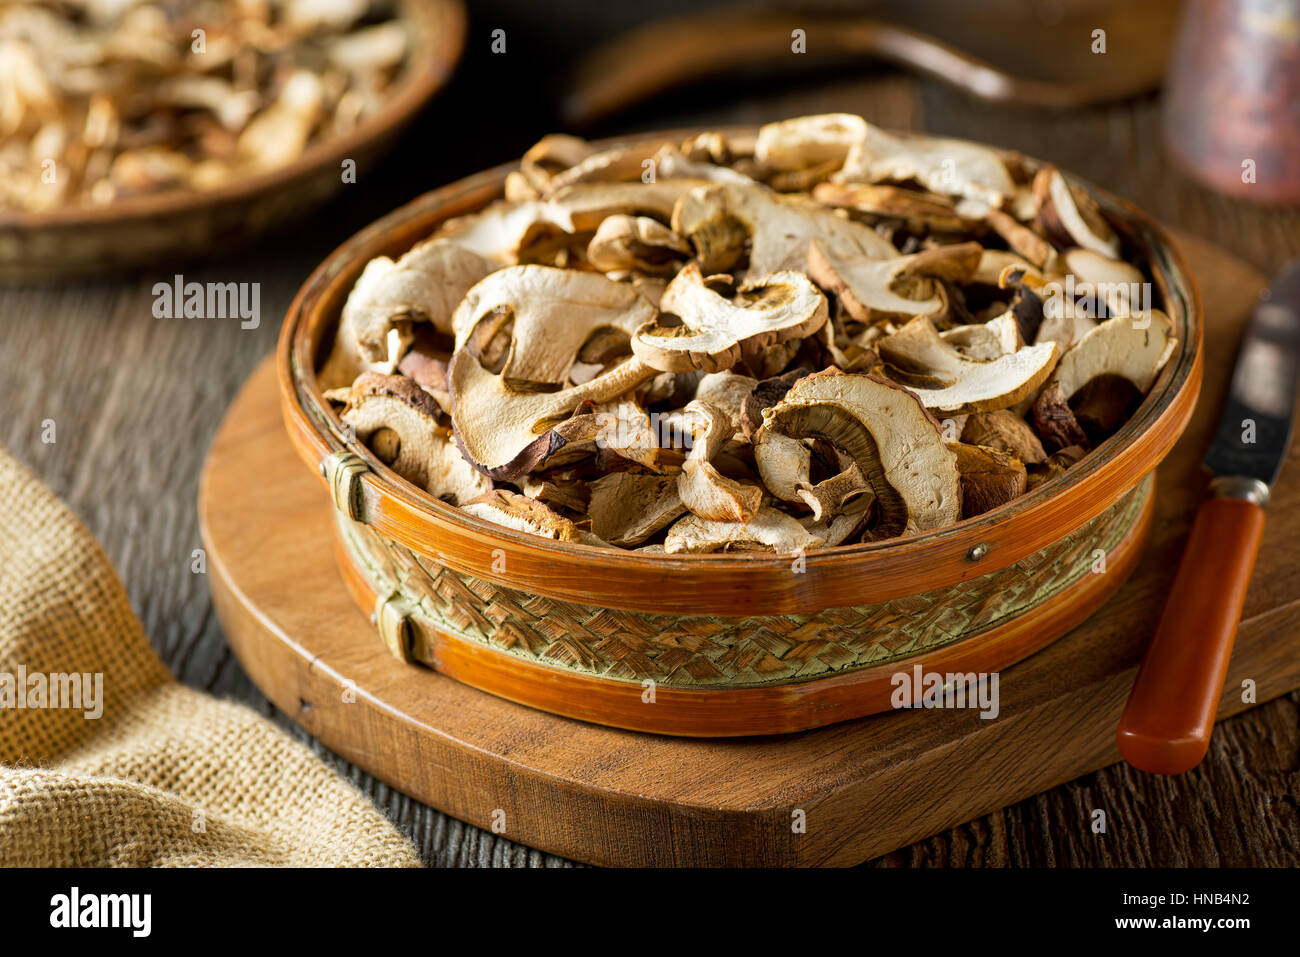 Sliced and dried wild mushrooms in a basket. - Stock Image